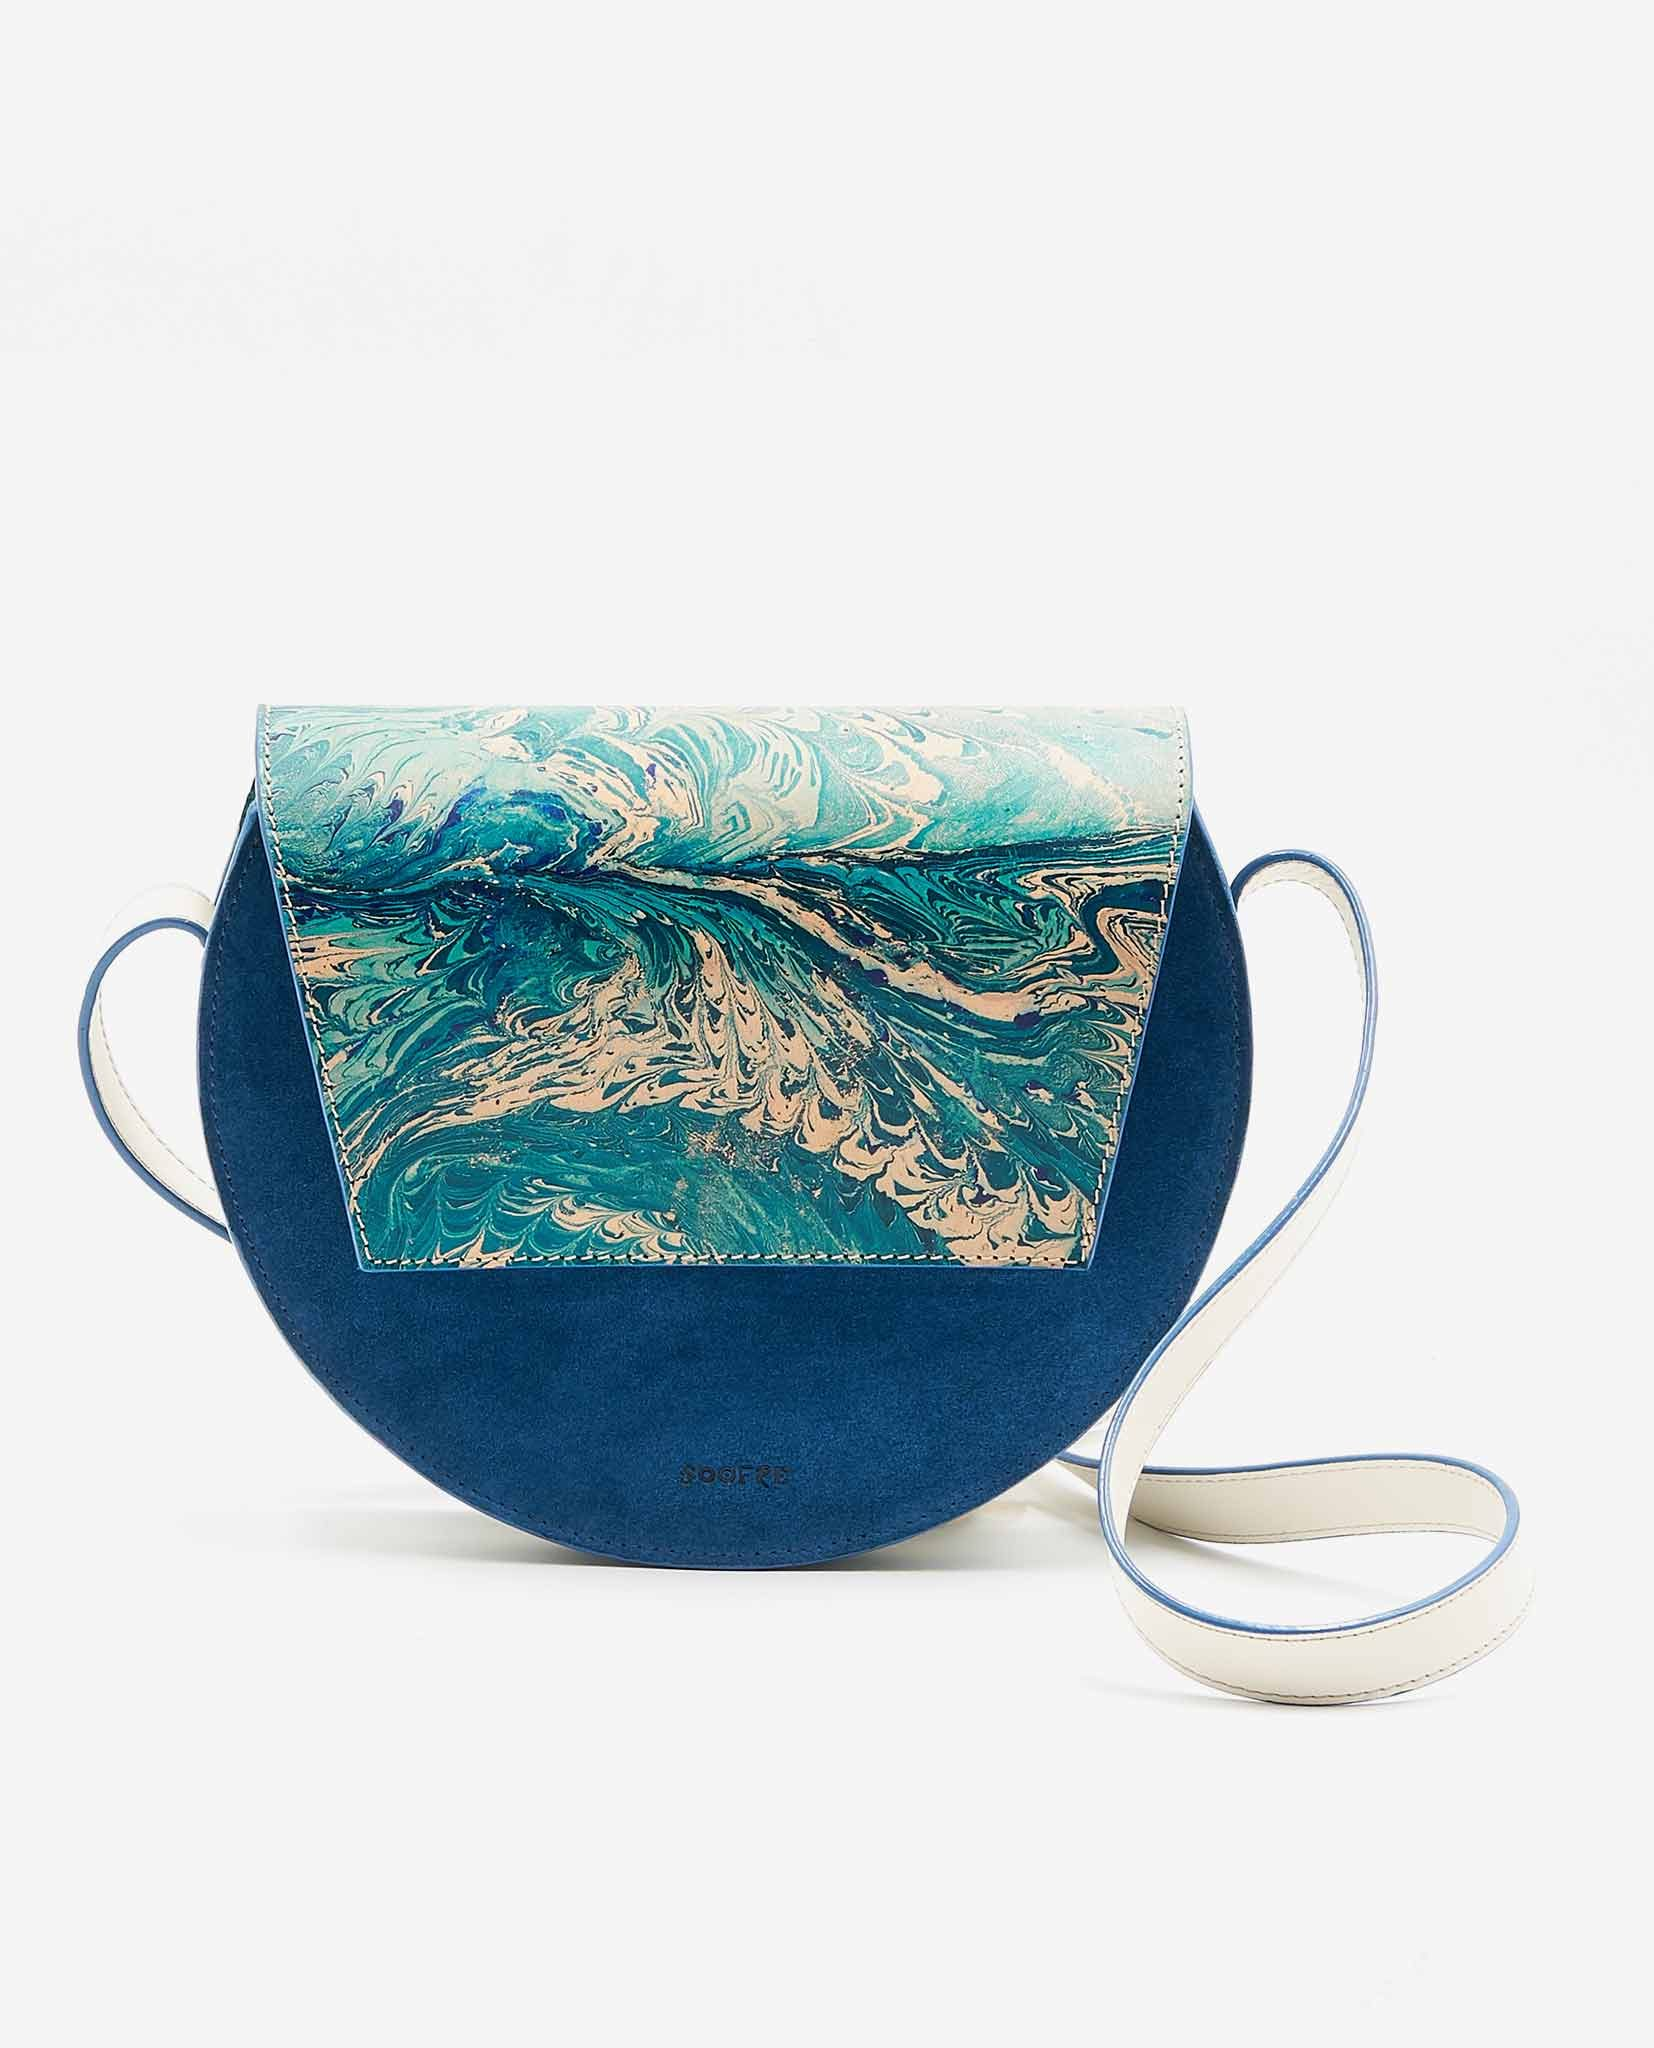 SOOFRE-Berlin-unique-Crossbody-Purse-marble-turquoise-sapphire-blue-FRONT